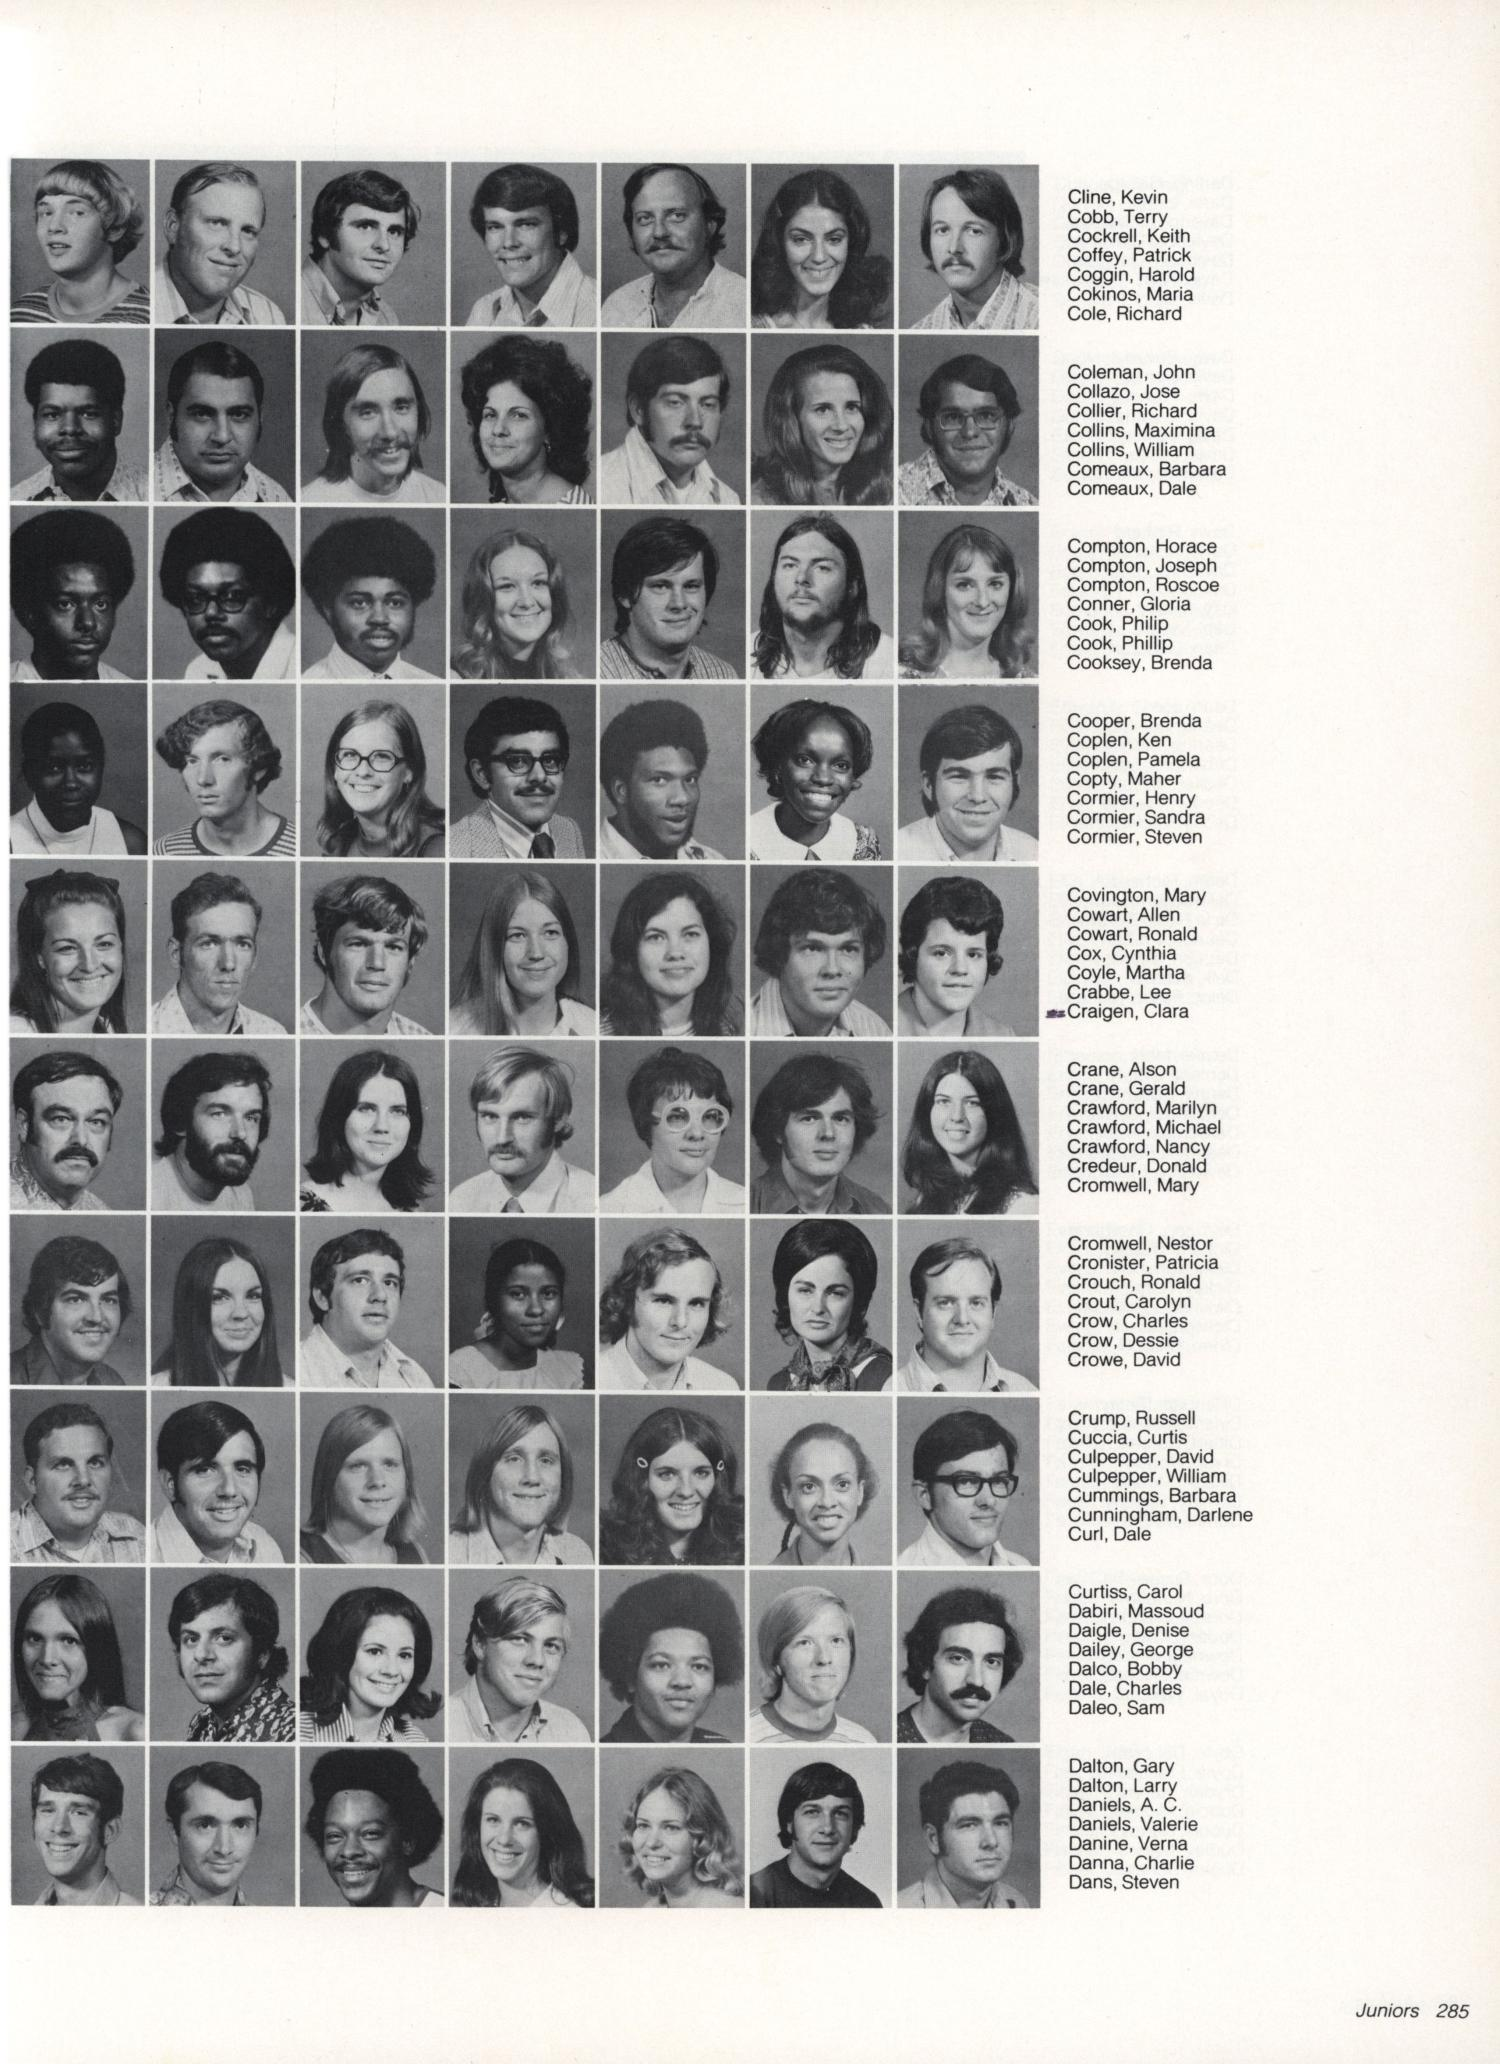 The Cardinal, Yearbook of Lamar University, 1973 - Page 285